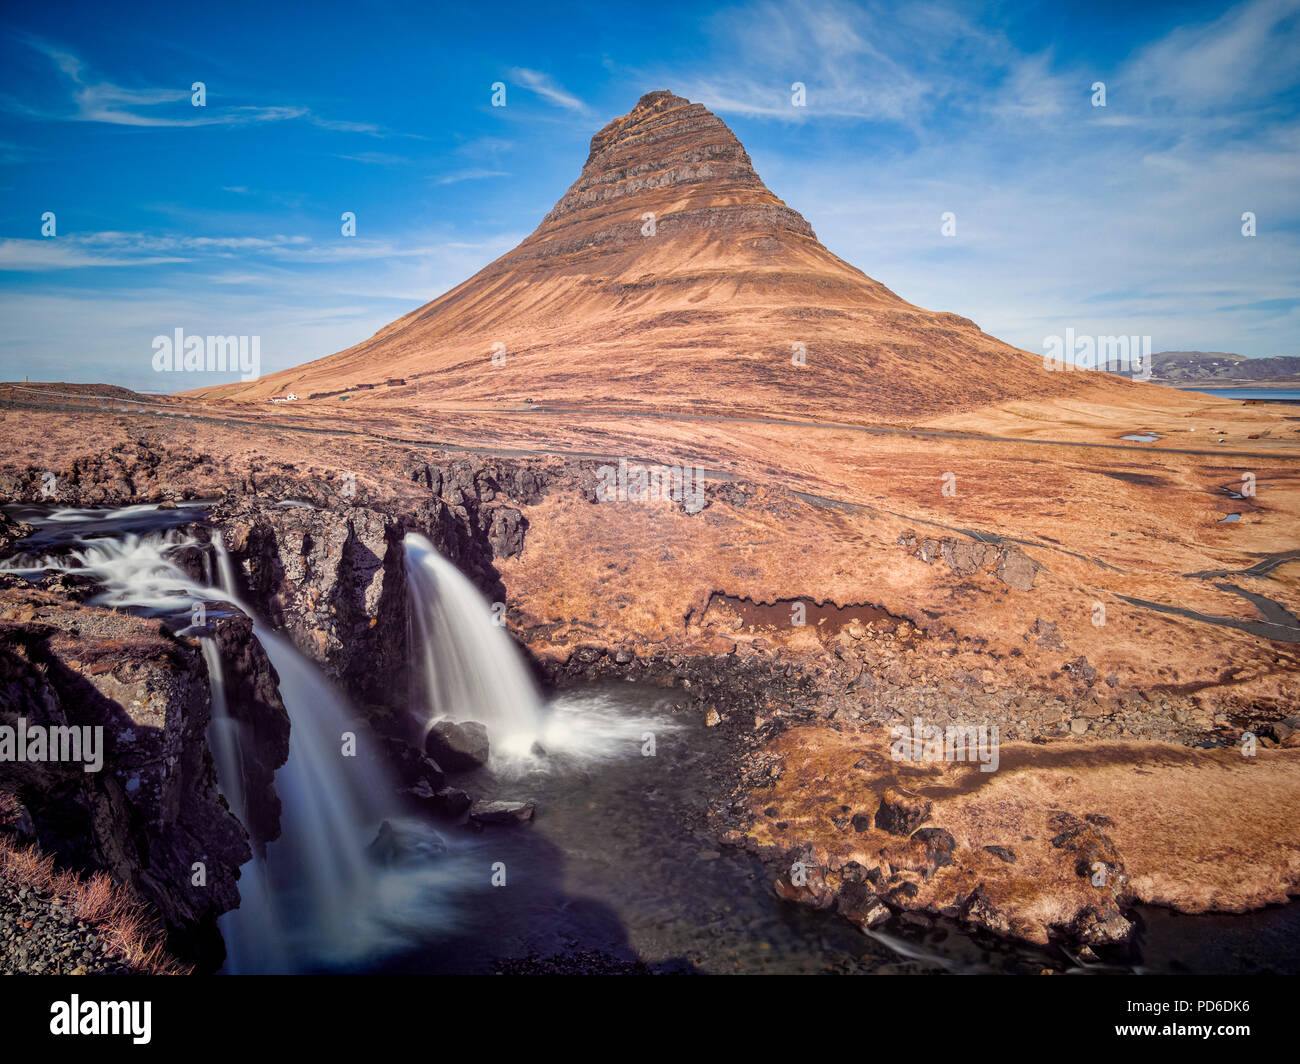 The mountain Kirkjufell and waterfall Kirkjufellsfoss on the Snaefellsnes Peninsula, Iceland. - Stock Image